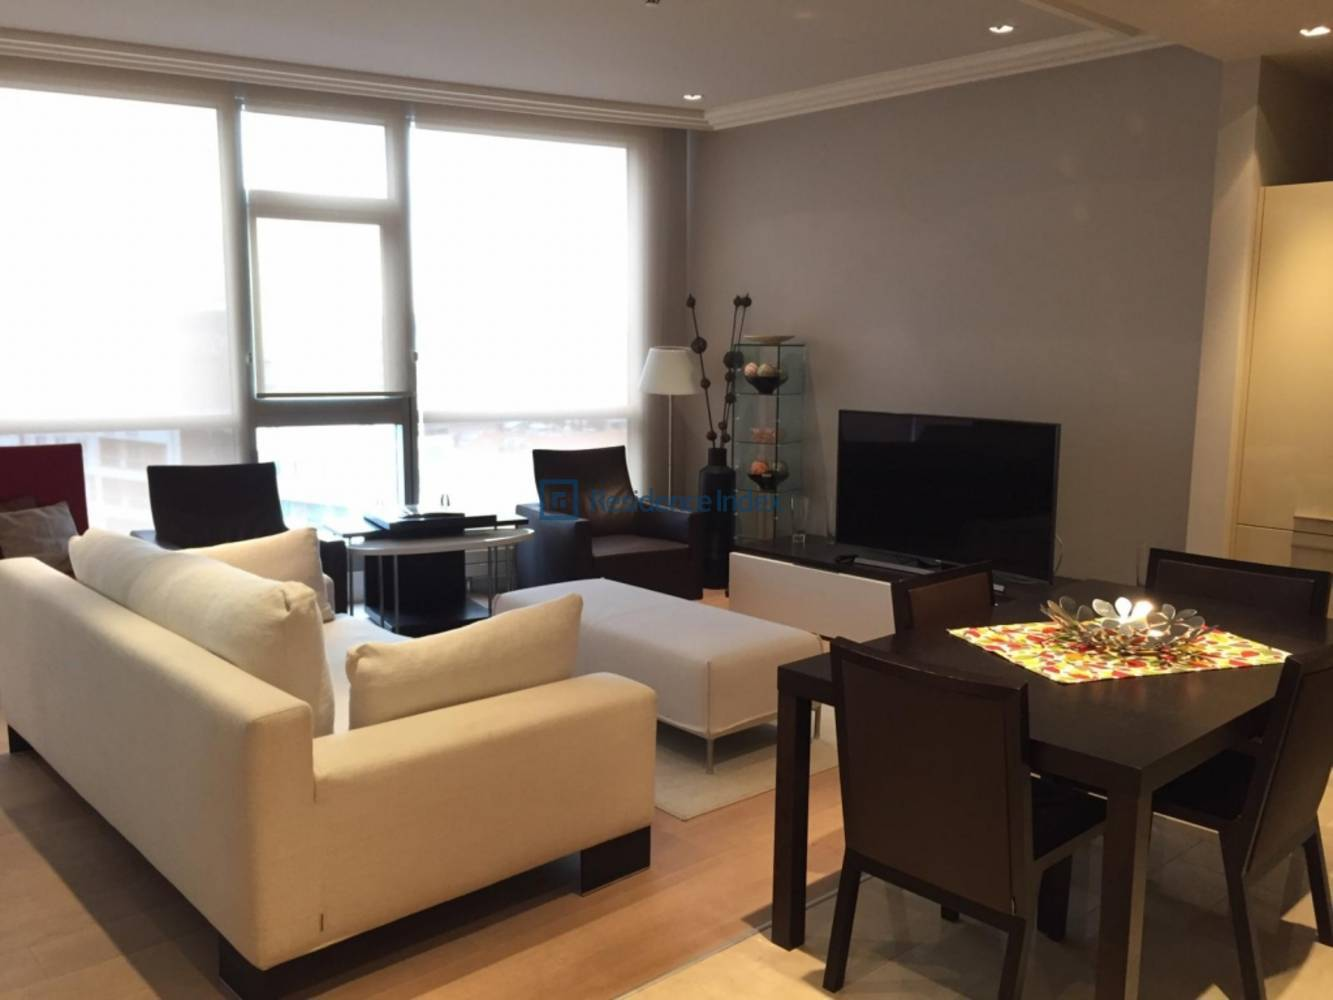 Spacious 1 + 1 apartment for rent